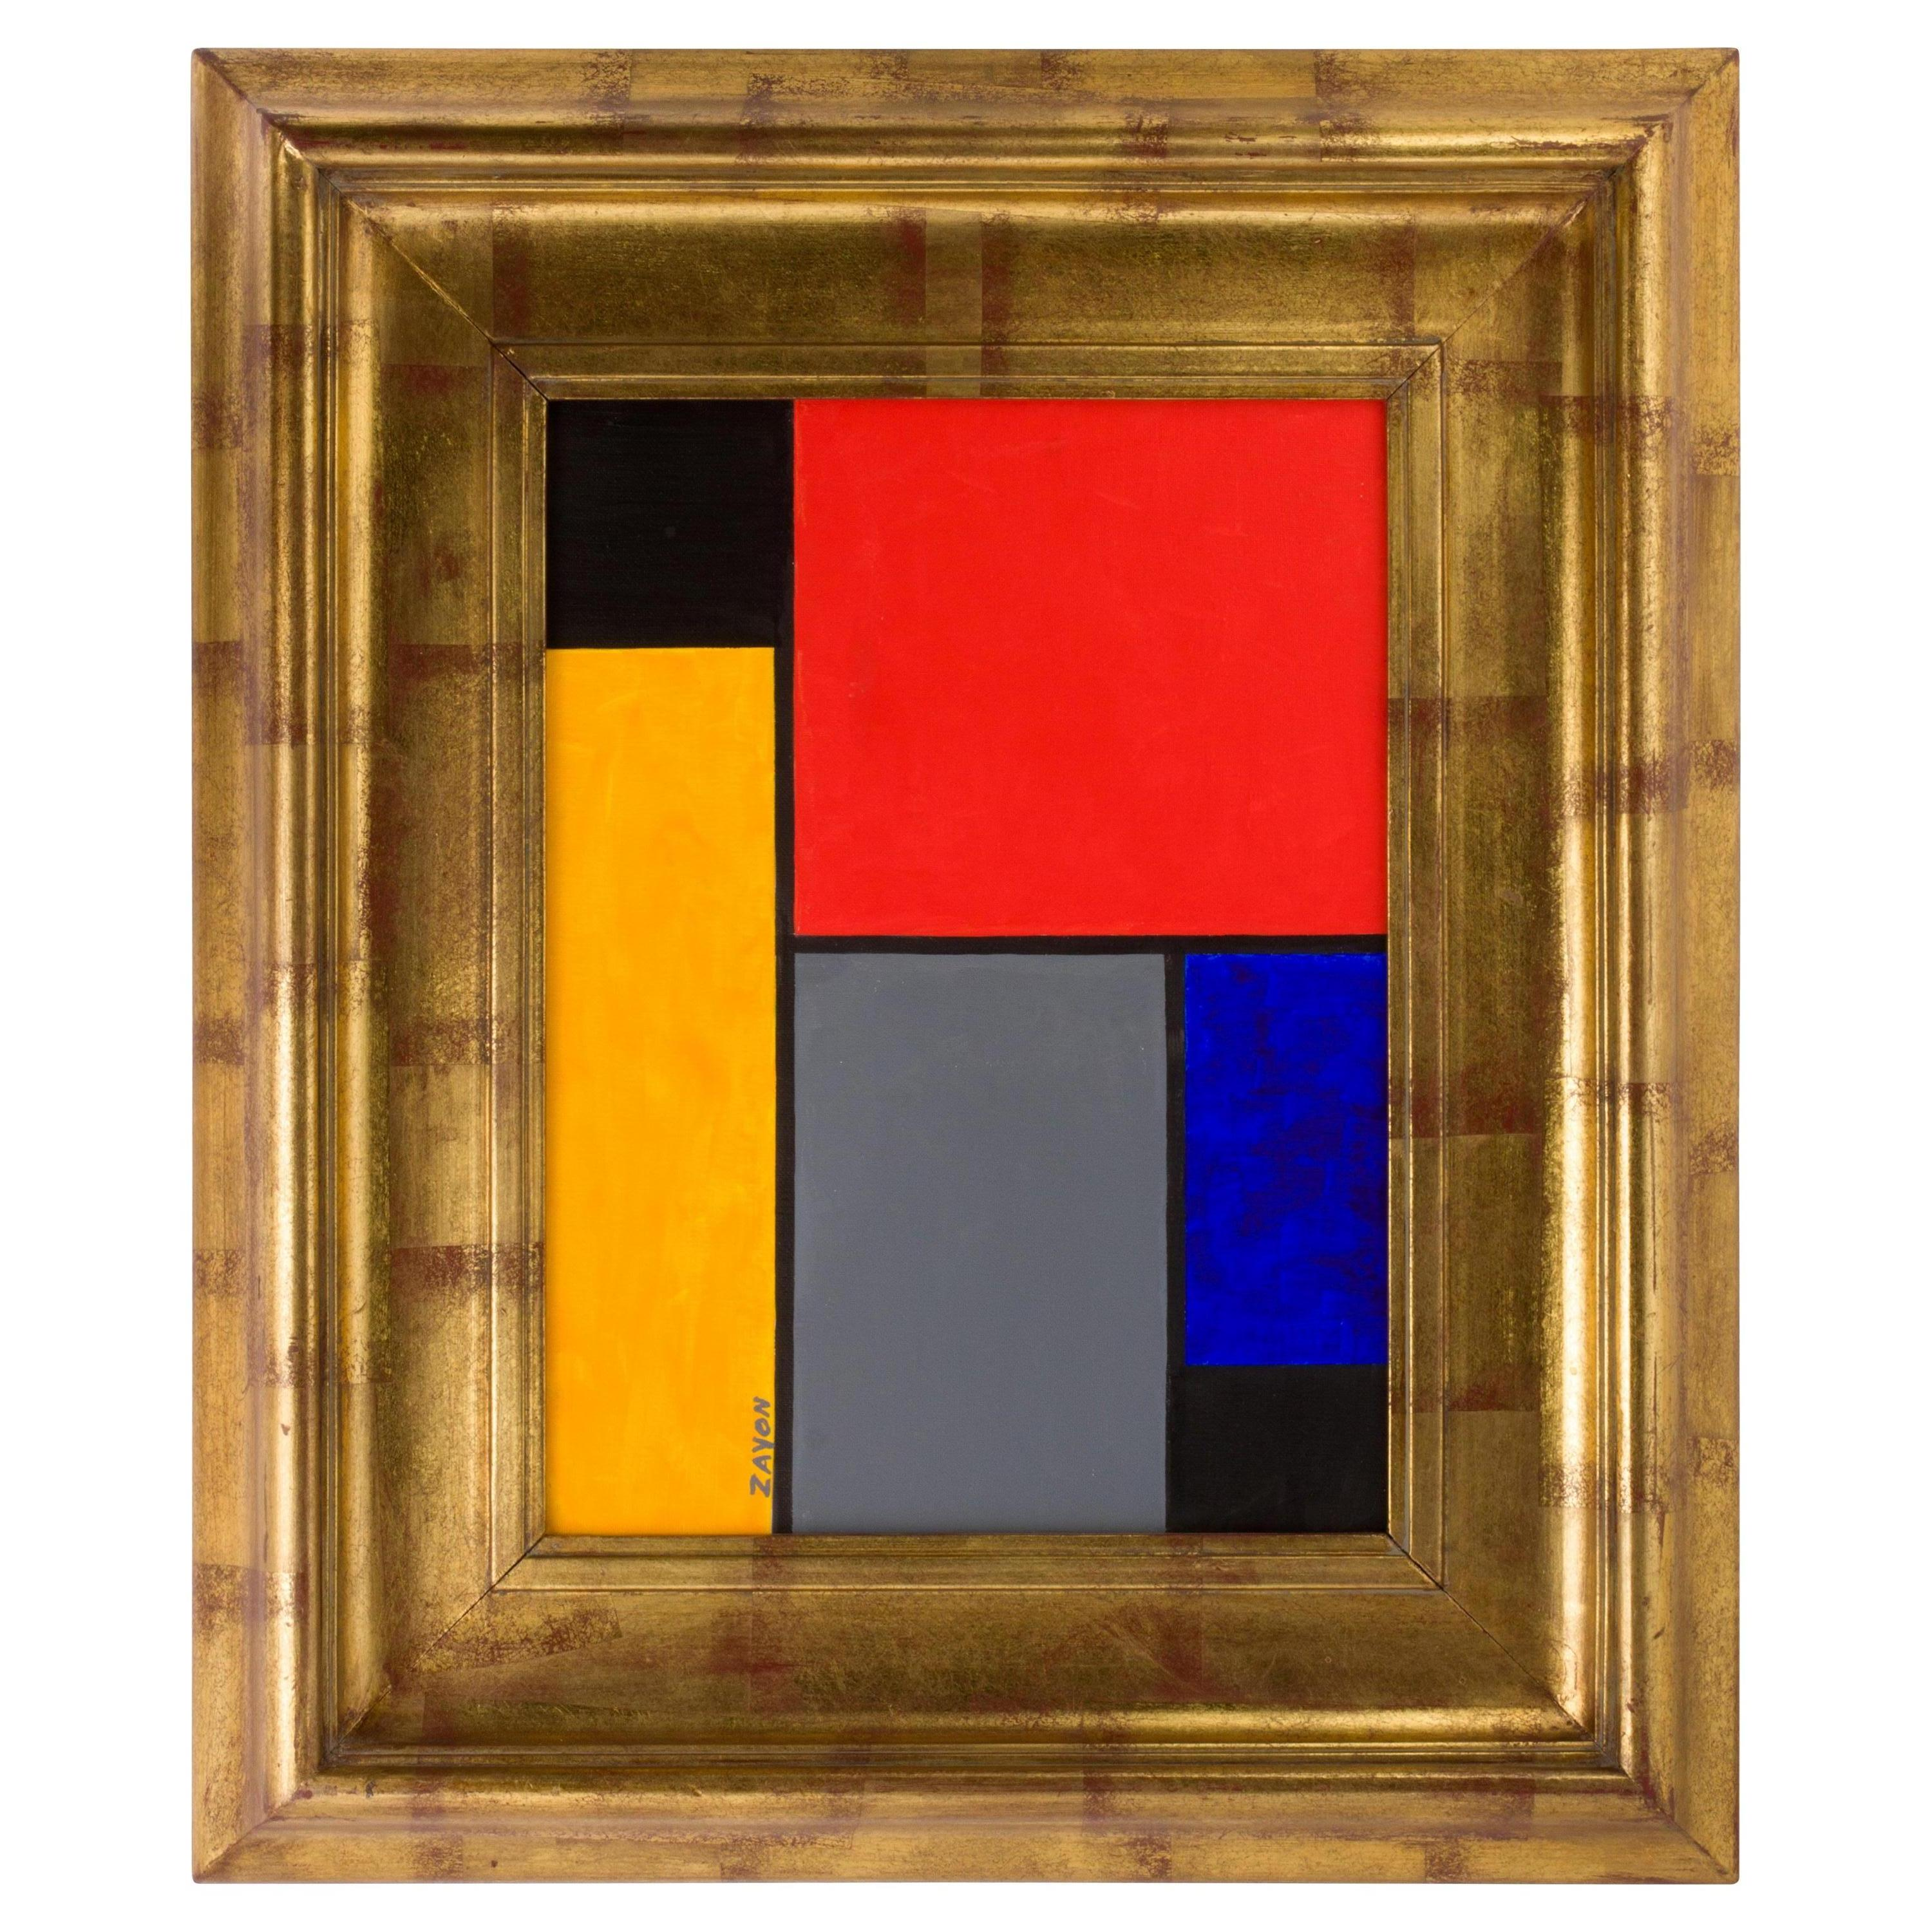 Geometric Abstract Oil on Board by Seymour Zayon